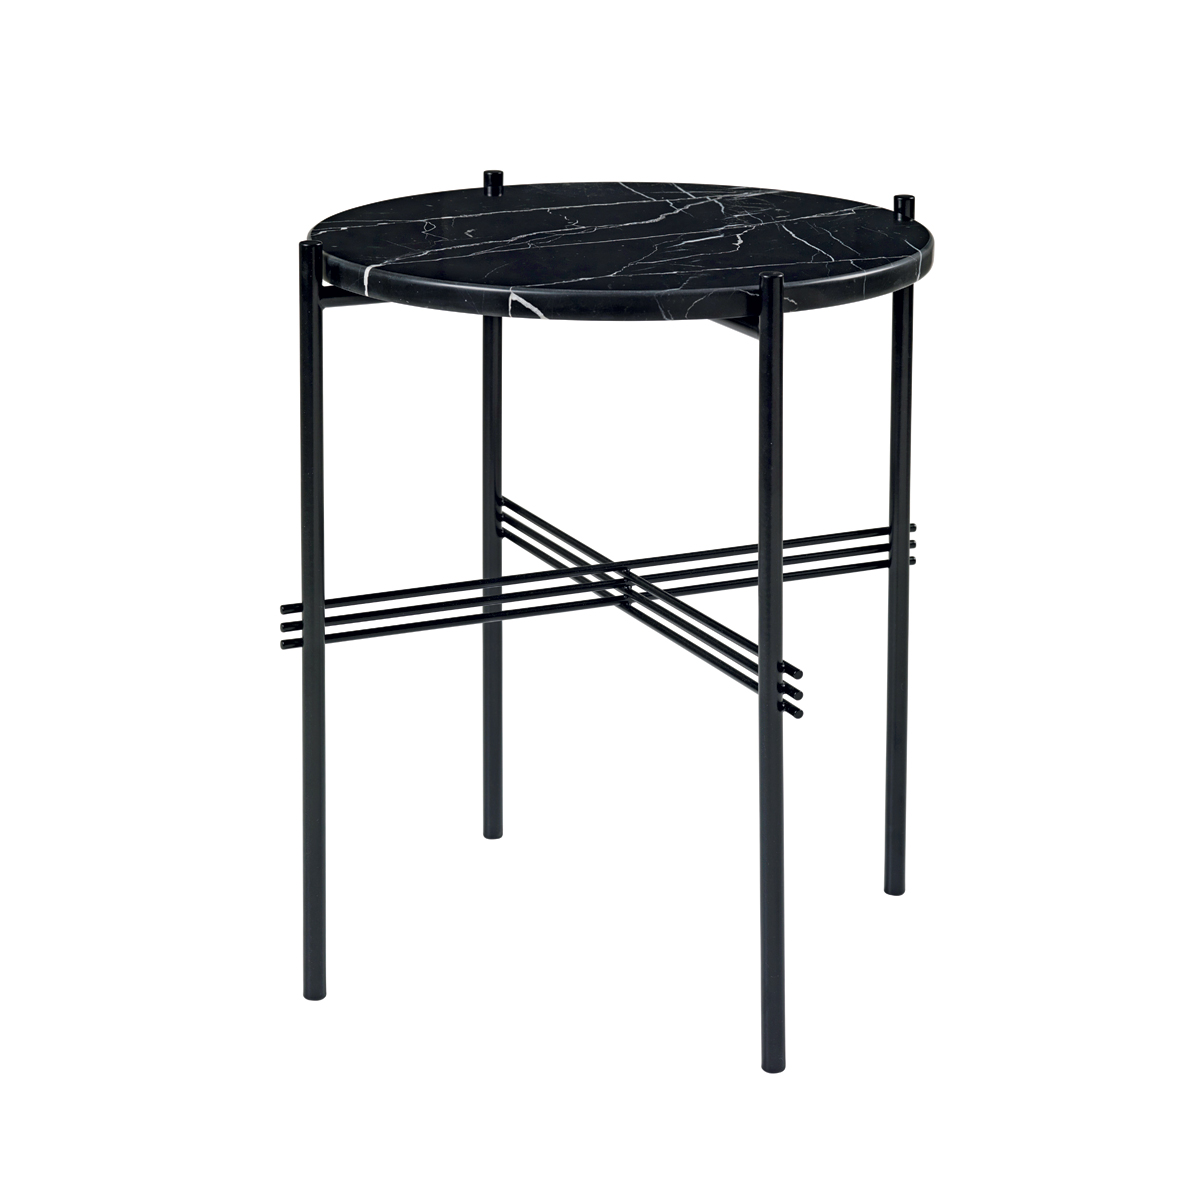 marble accent table trnk gubi black small half circle glass top mirrored side white patio coffee long hallway affordable nightstands adjustable desk kitchen chairs antique brass